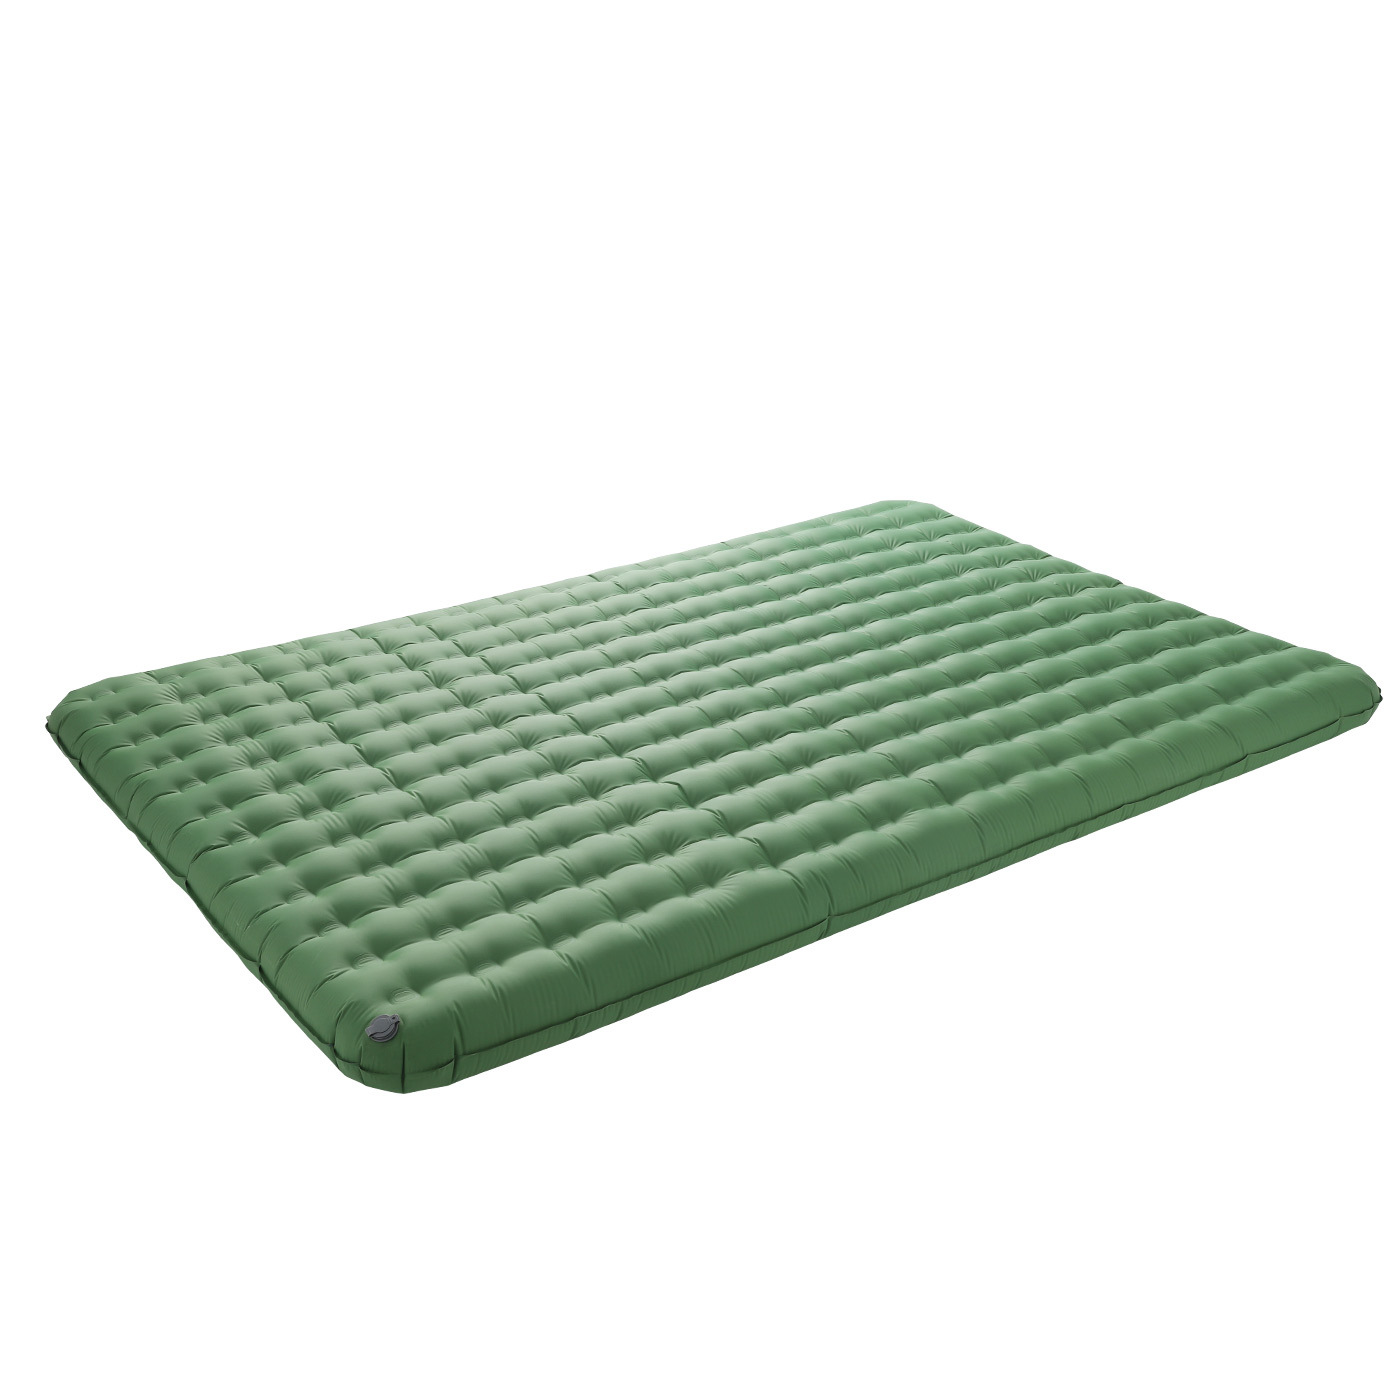 Cheap Sale Outdoor Thickened Double Inflatable Bed Wild Camping Tent Mat Portable Lunch Break Pad Inflatable Mattress High Safety